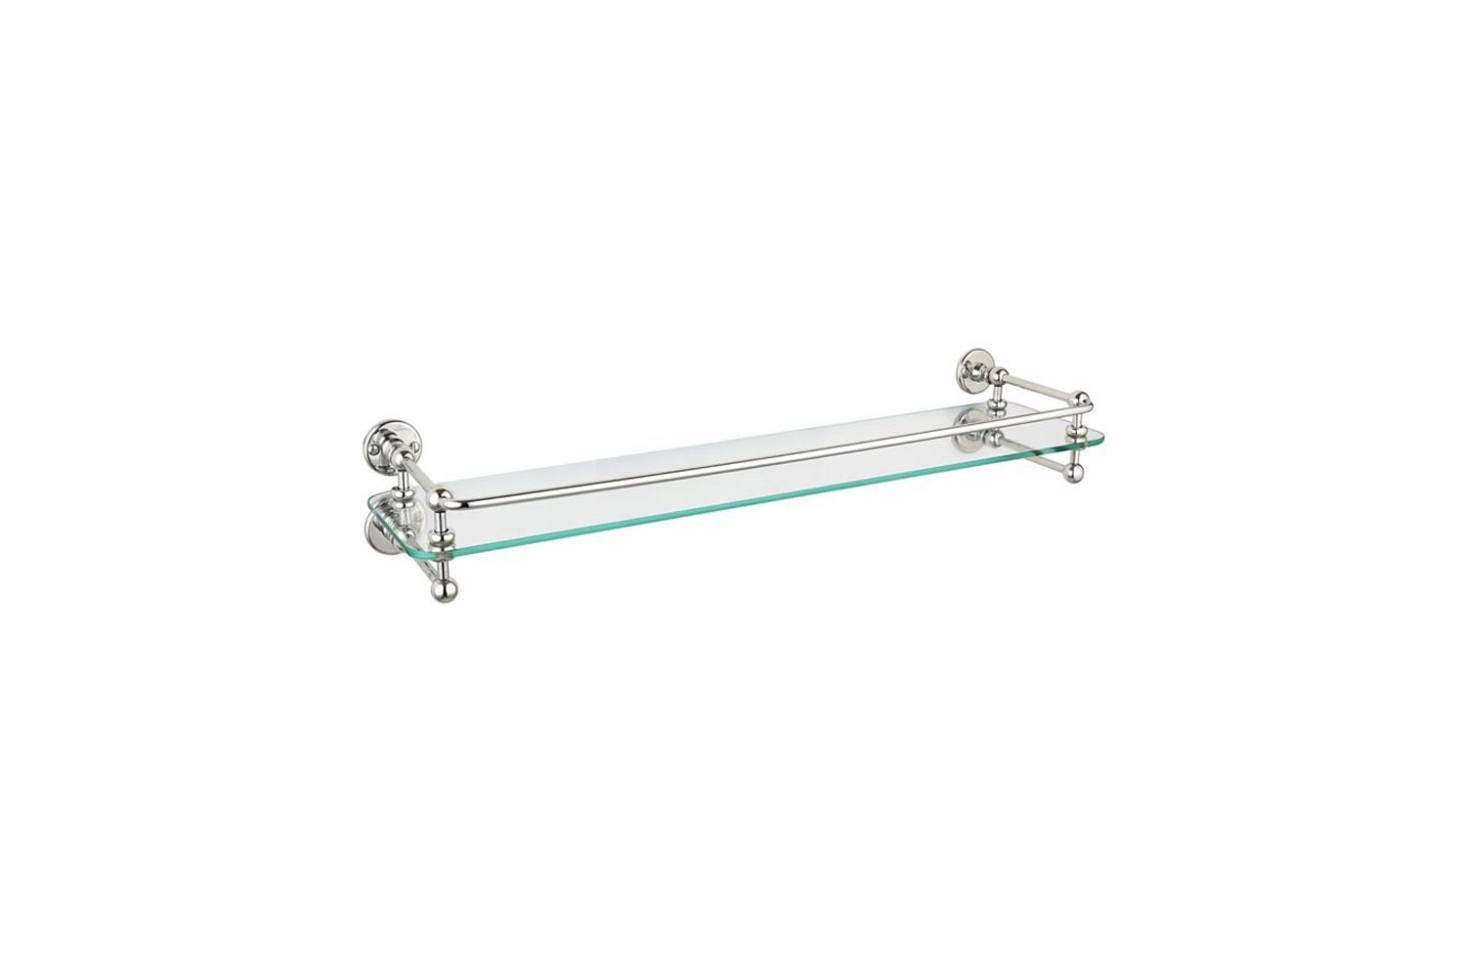 The Drummonds Single Glass Shelf is $4 at Drummonds. Other options are theRockwell Glass Shelf with Lifting Rail from the Water Monopoly (£44